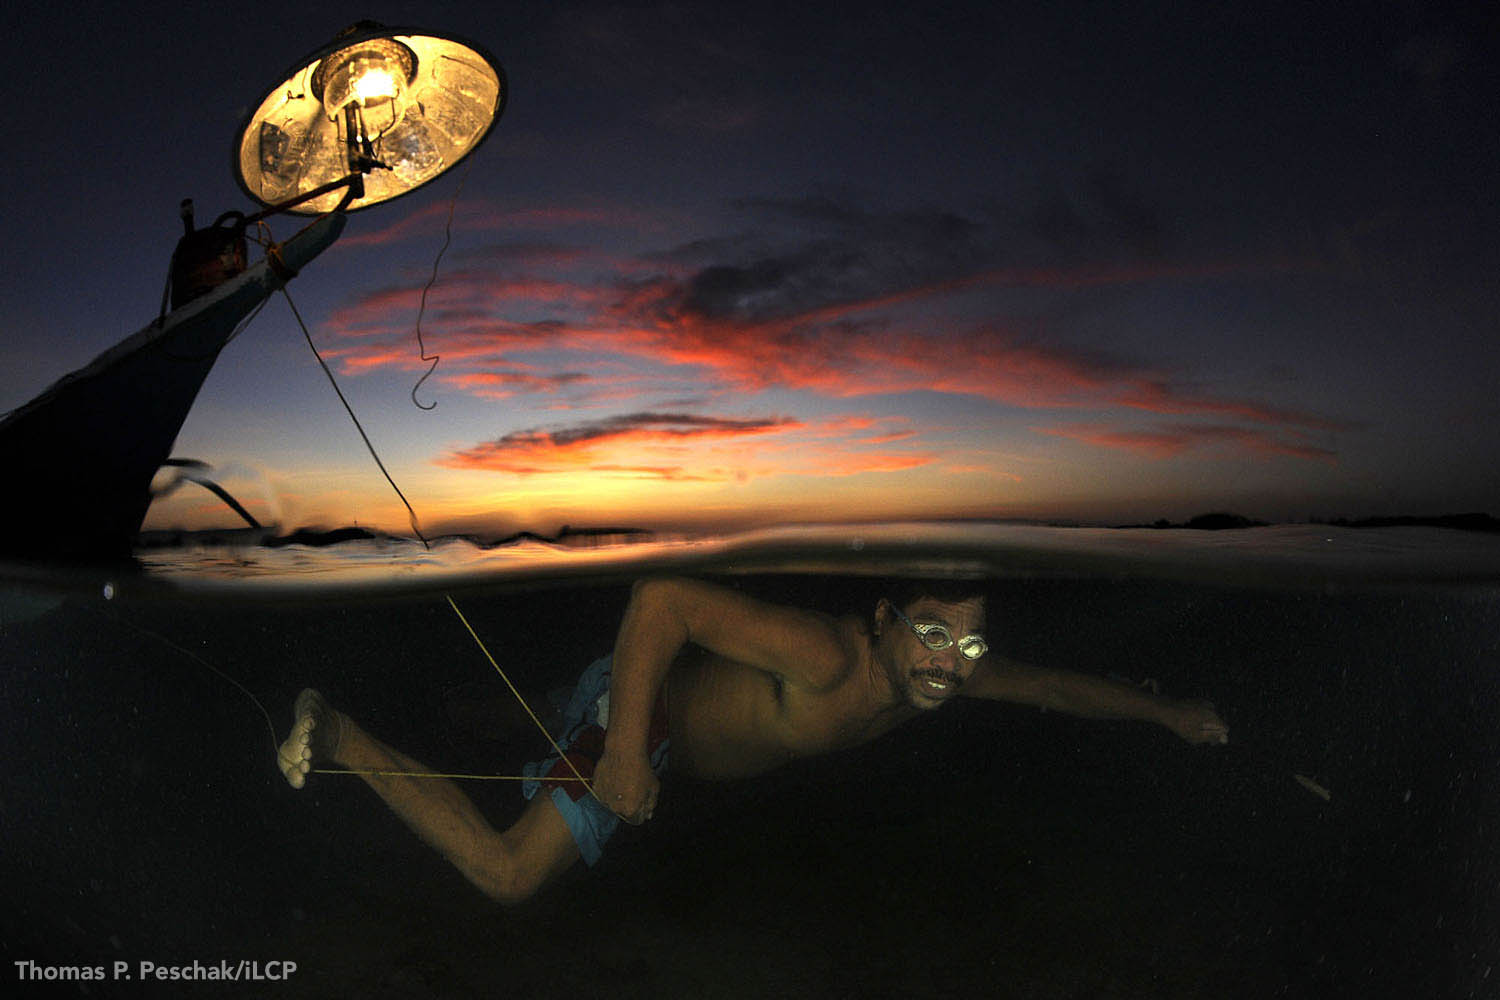 Equipped with homemade gear, this fisher will hunt all night for a meagre catch, including, if he's lucky, a seahorse or two. Lantern fishing is a traditional method that is slowly being replaced by more destructive practices.   Thomas P. Peschak/iLCP